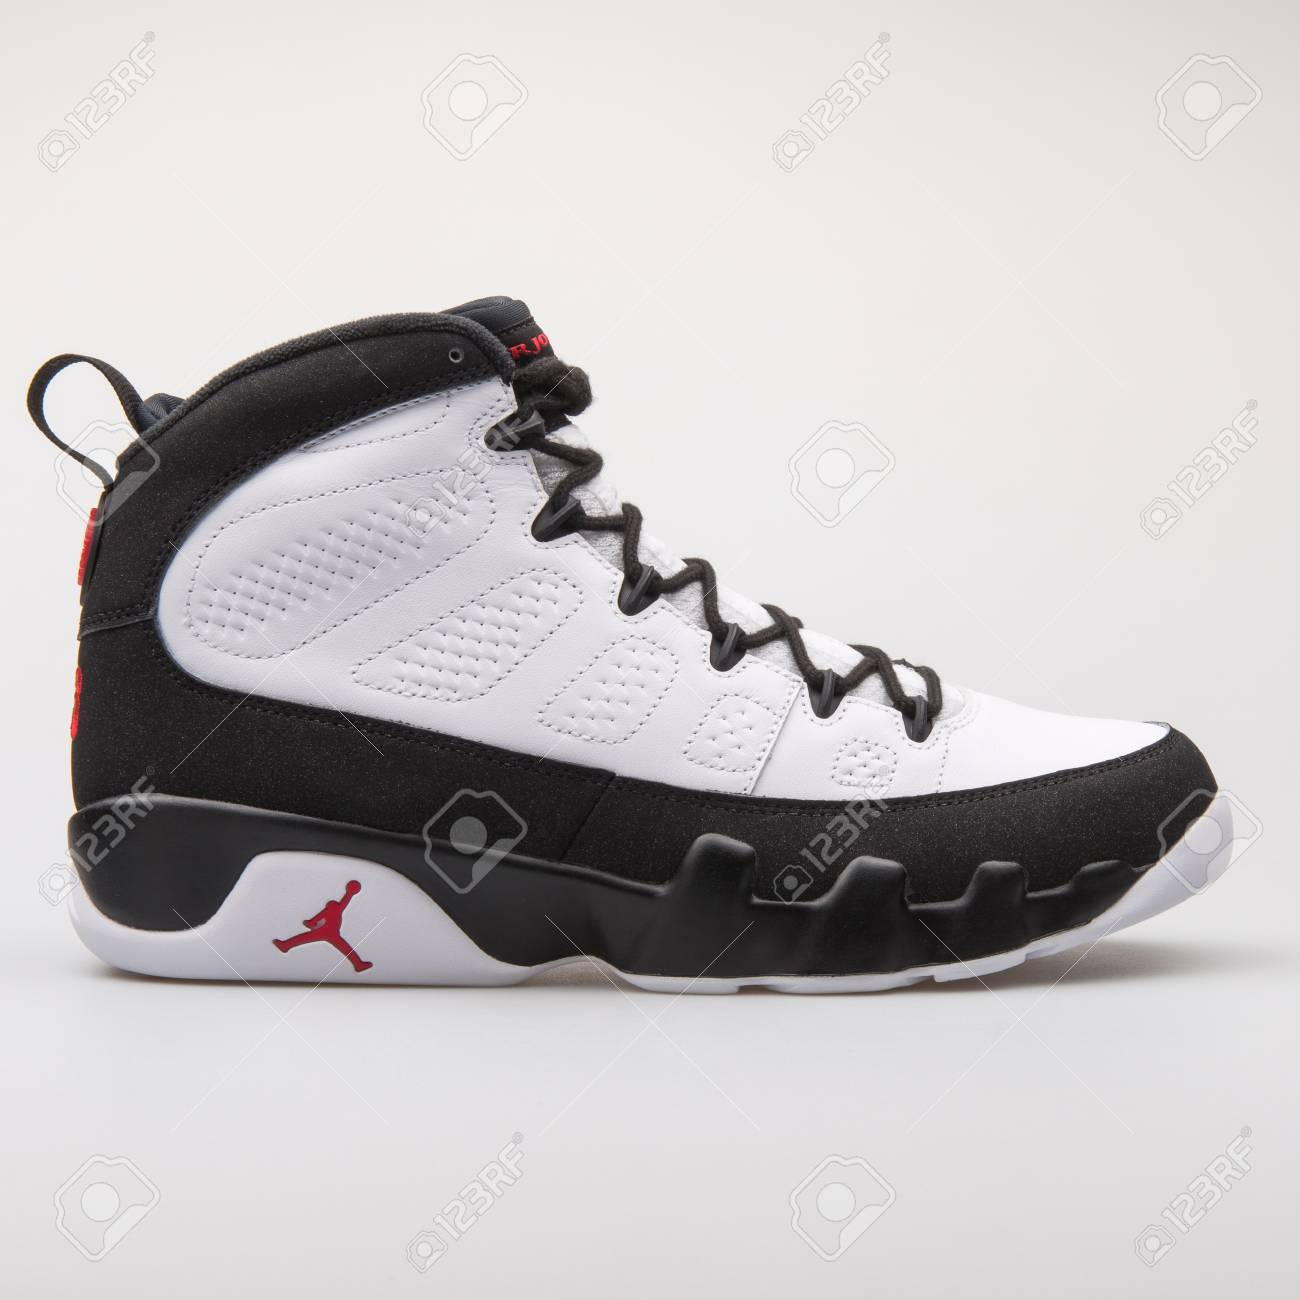 womens Air jordan 9 VIENNA, AUSTRIA - JUNE 14, 2017: Nike Air Jordan 9 Retro Black ...